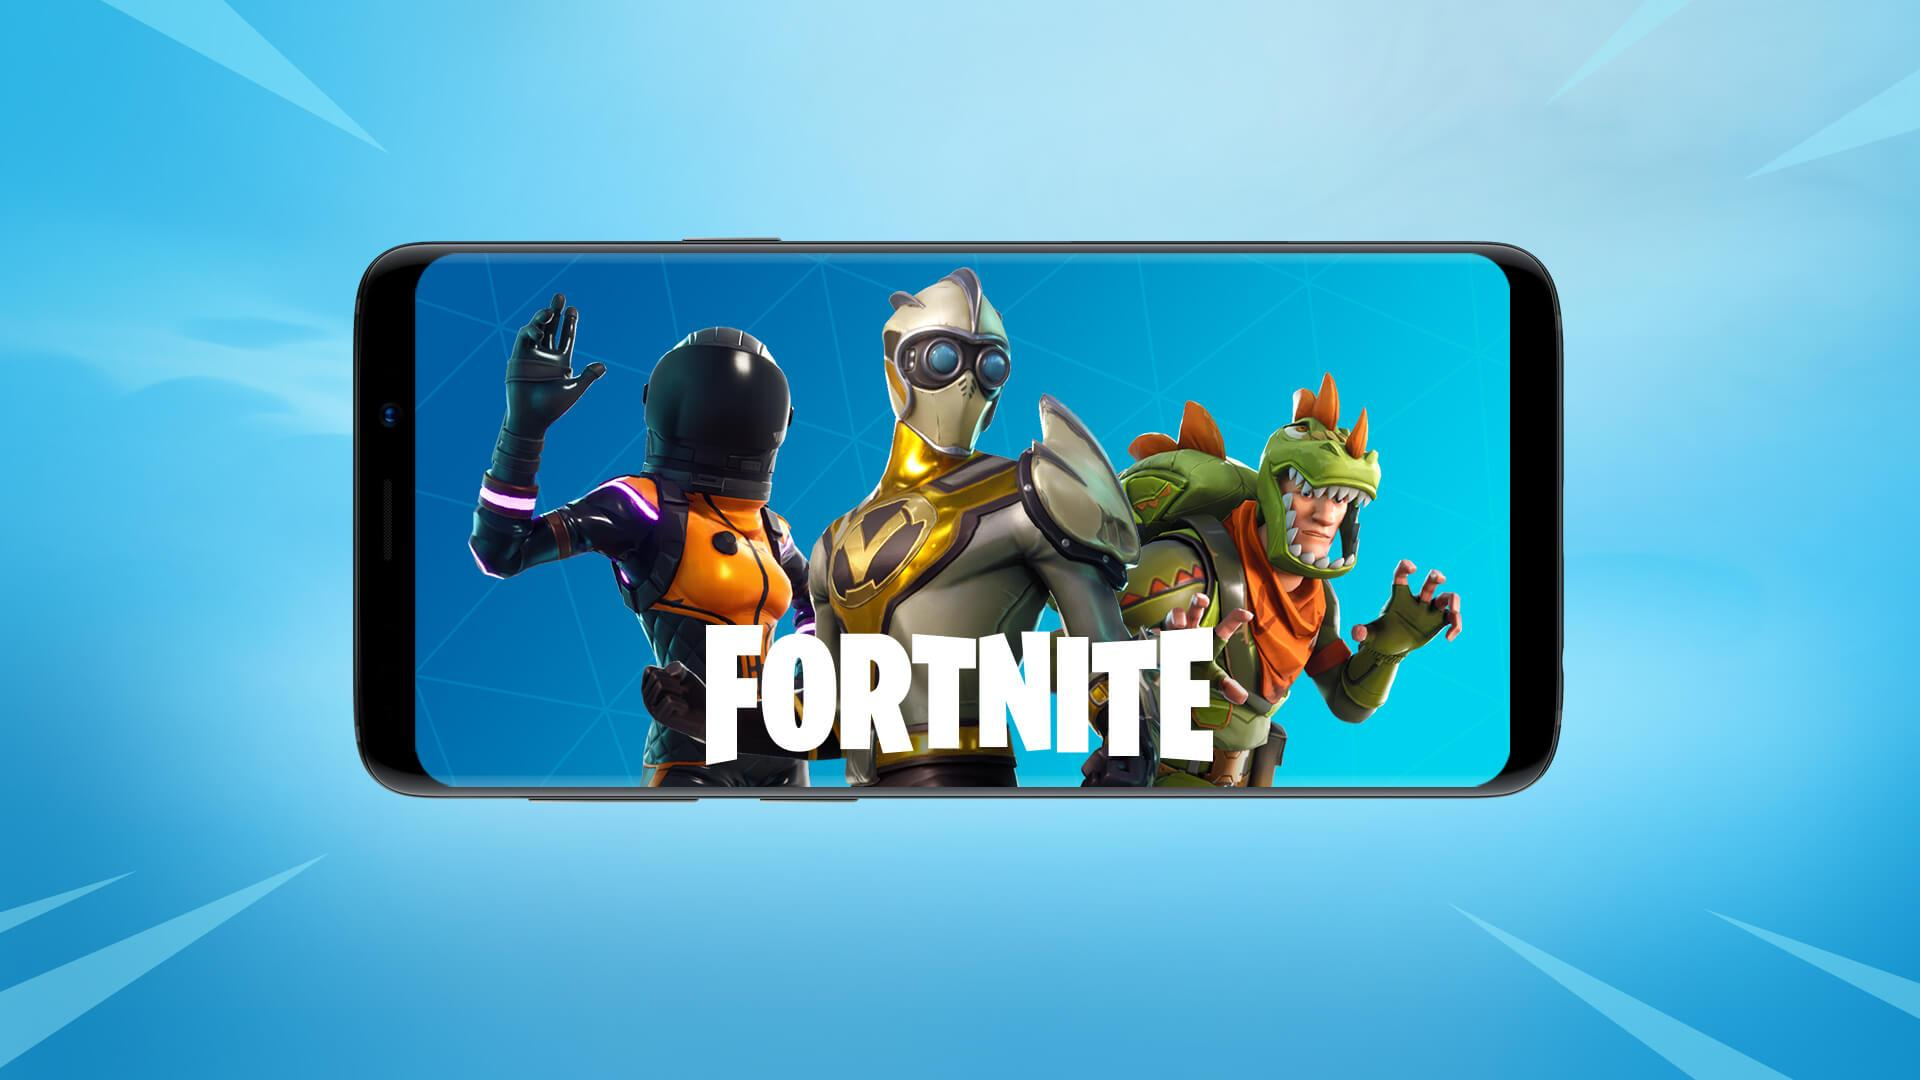 epic games fortnite mobile android download free